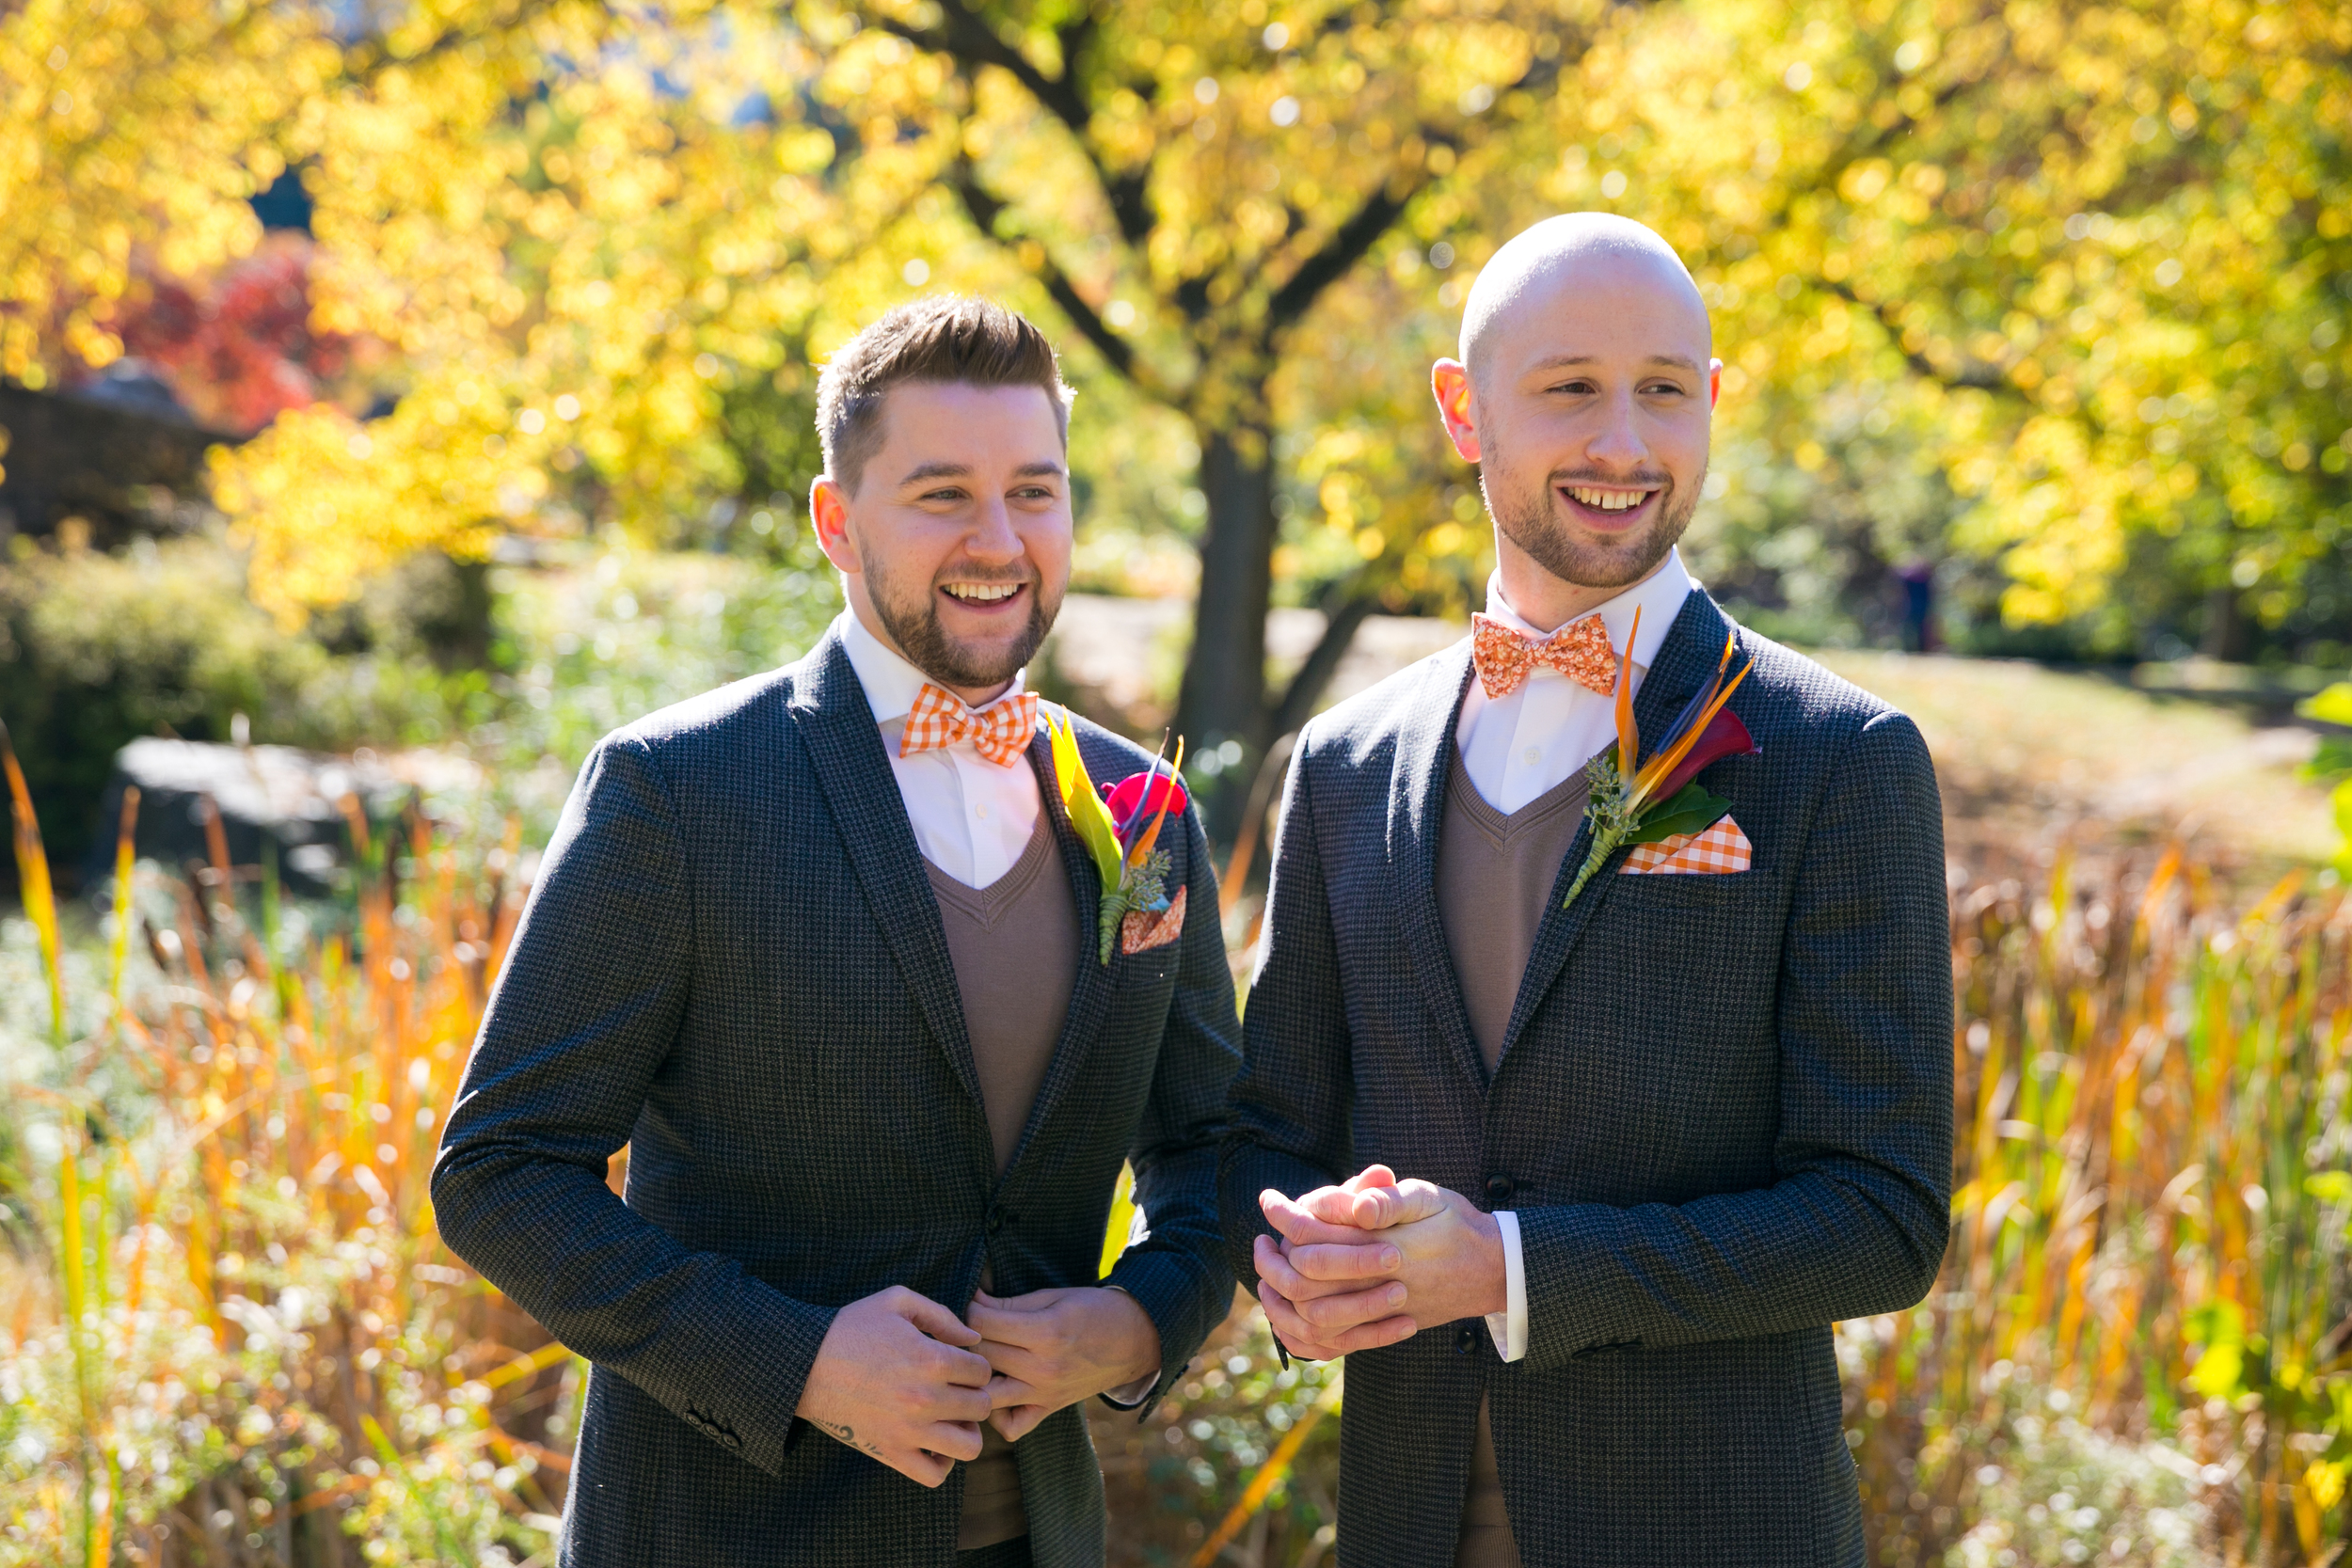 Wedding Officiant New Jersey | NYC Wedding Officiant